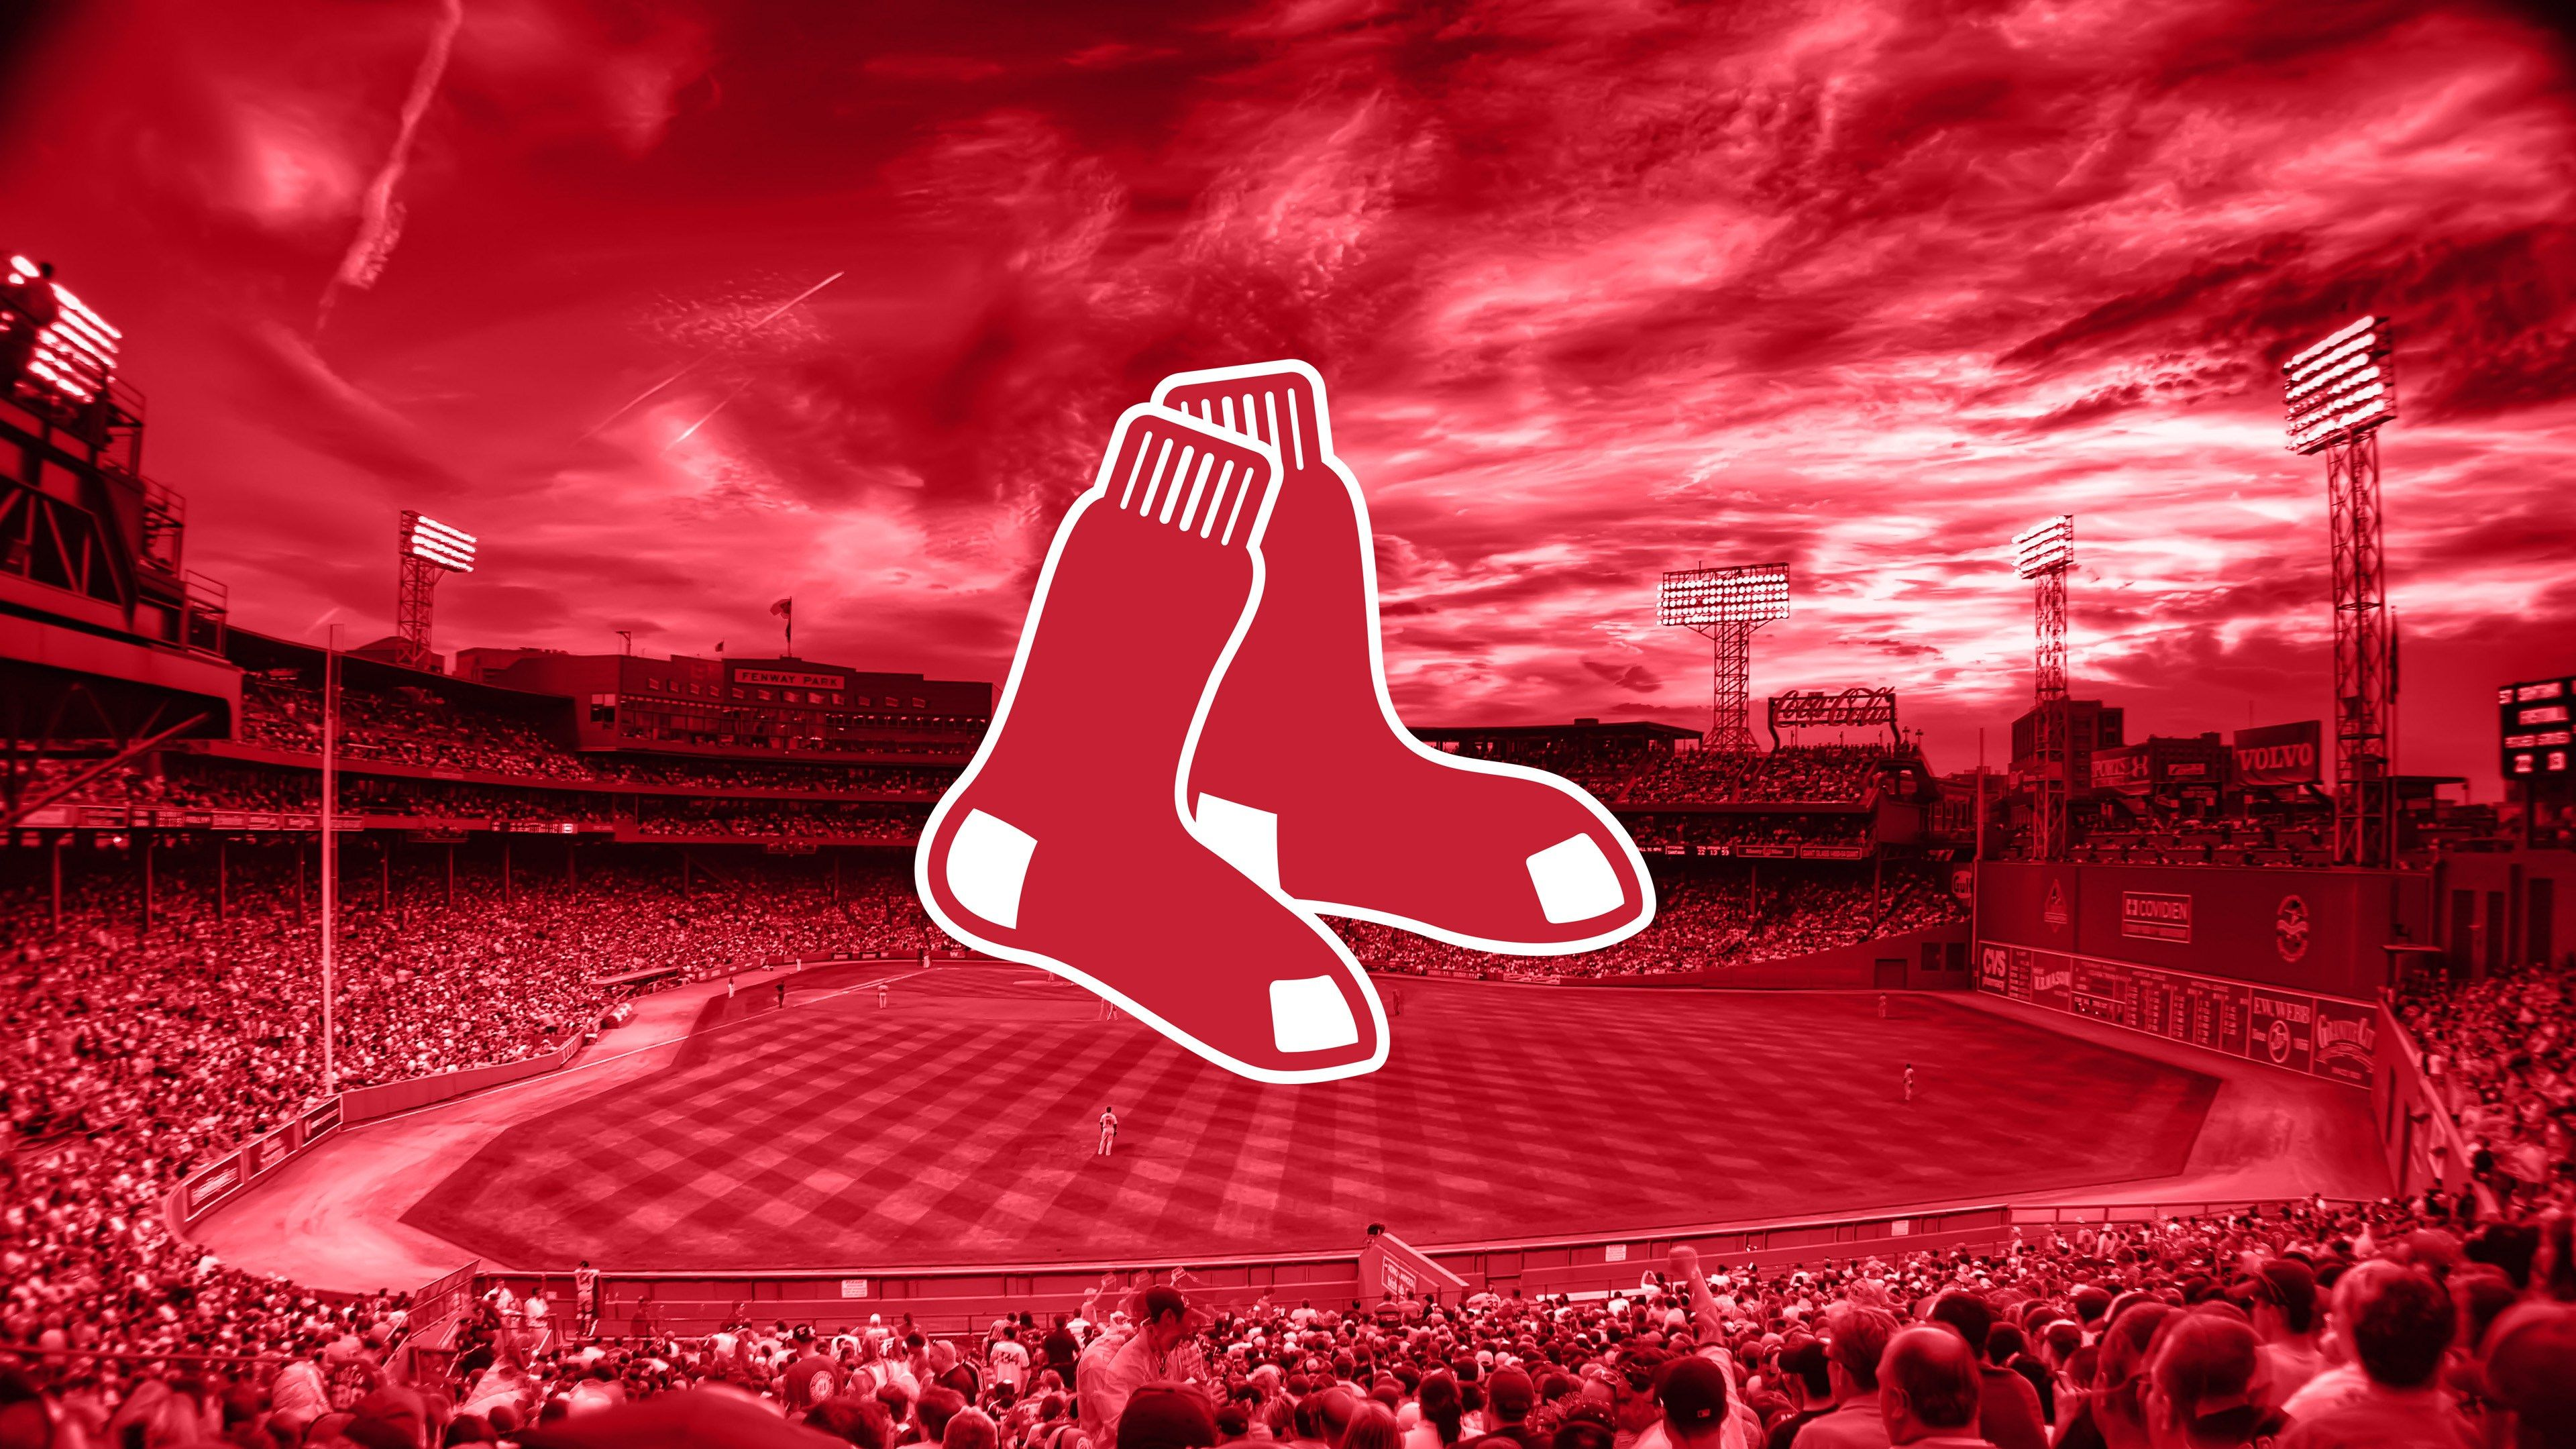 Boston Red Sox Logo Desktop Background Red Sox Logo Boston Red Sox Wallpaper Red Sox Wallpaper